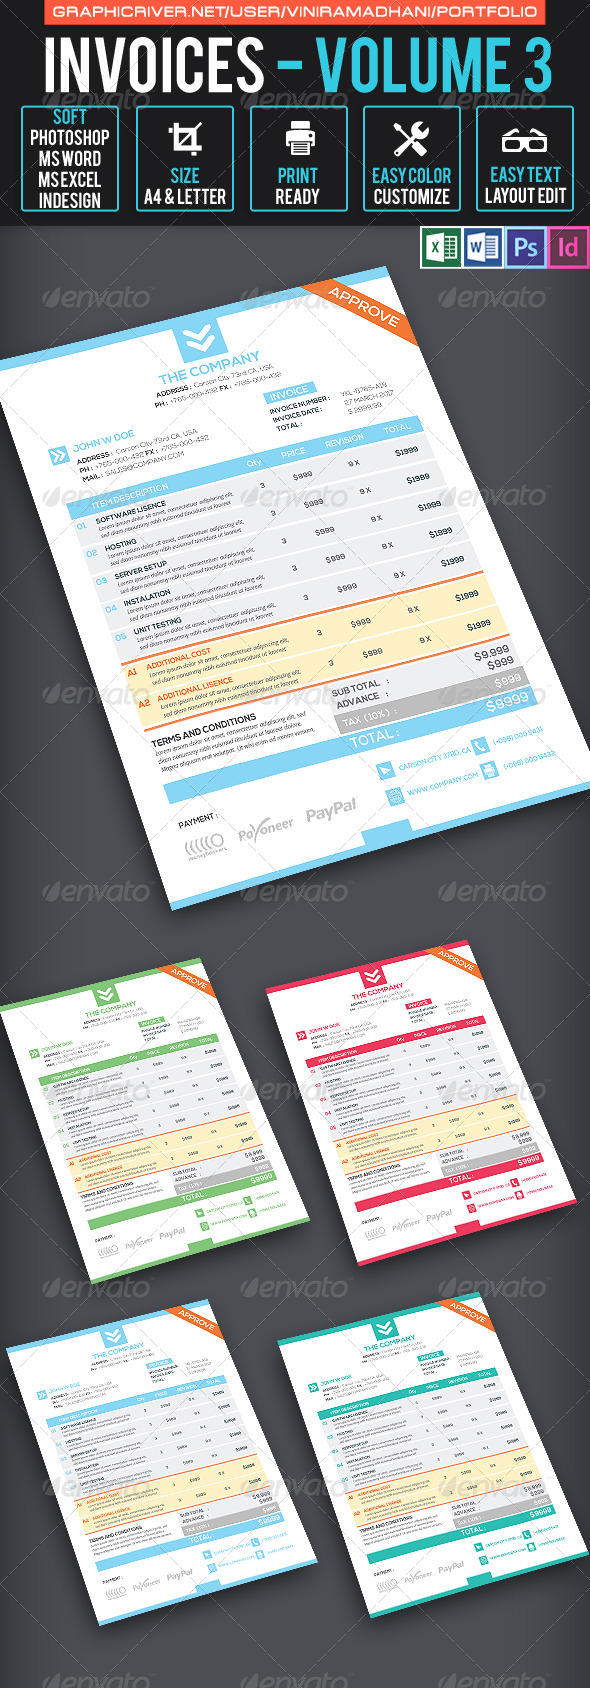 GraphicRiver Invoices Volume 3 7605619